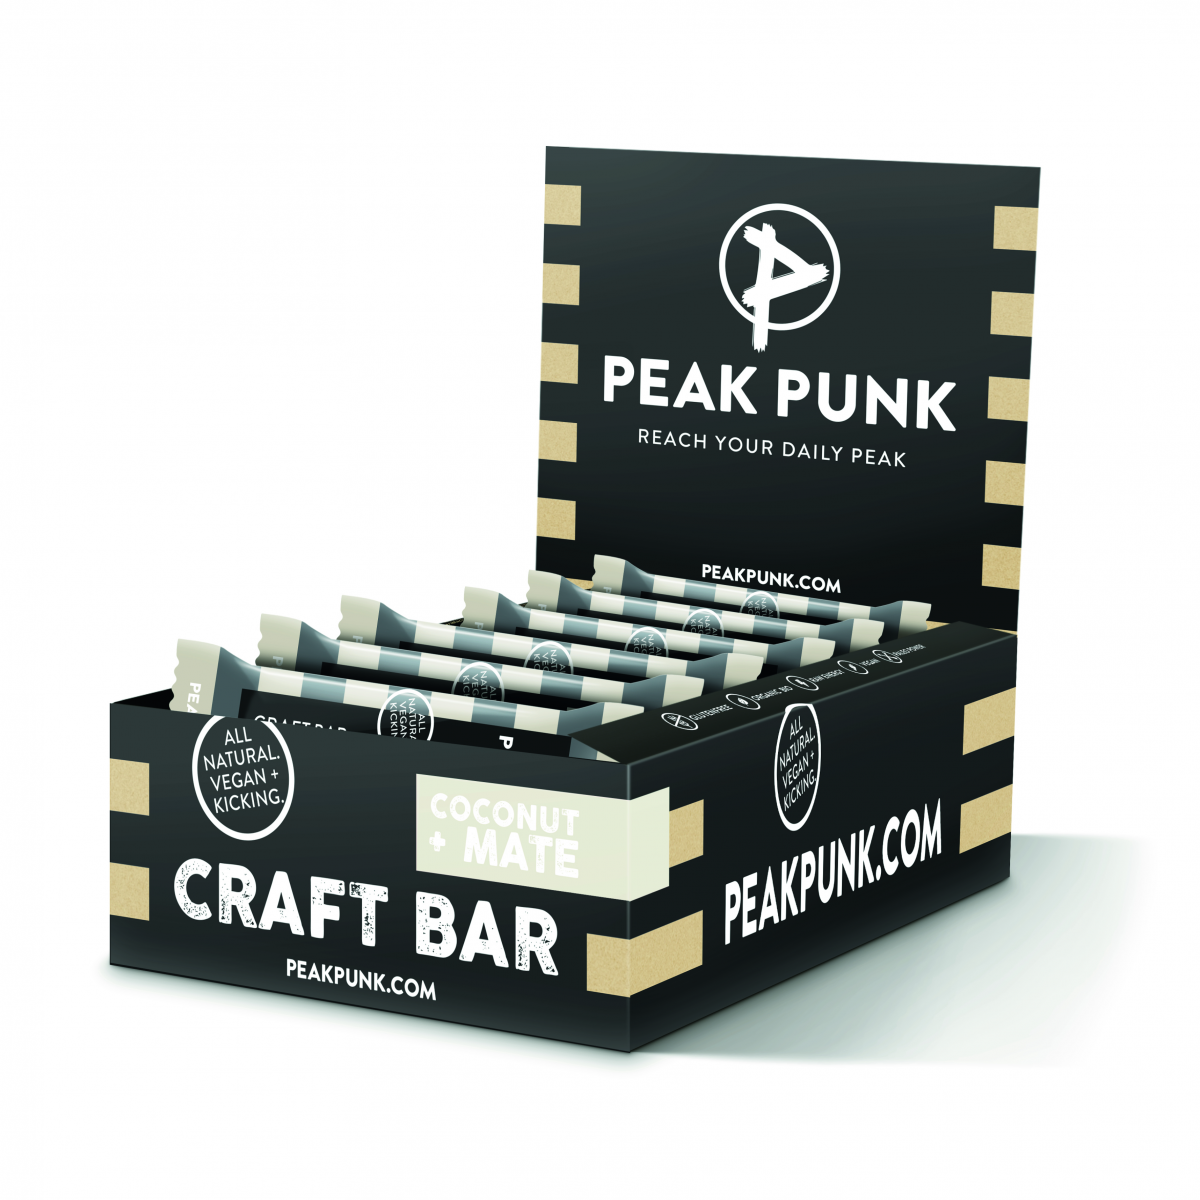 PEAK PUNK Display 15x38g Craft Bar Coconut Mate